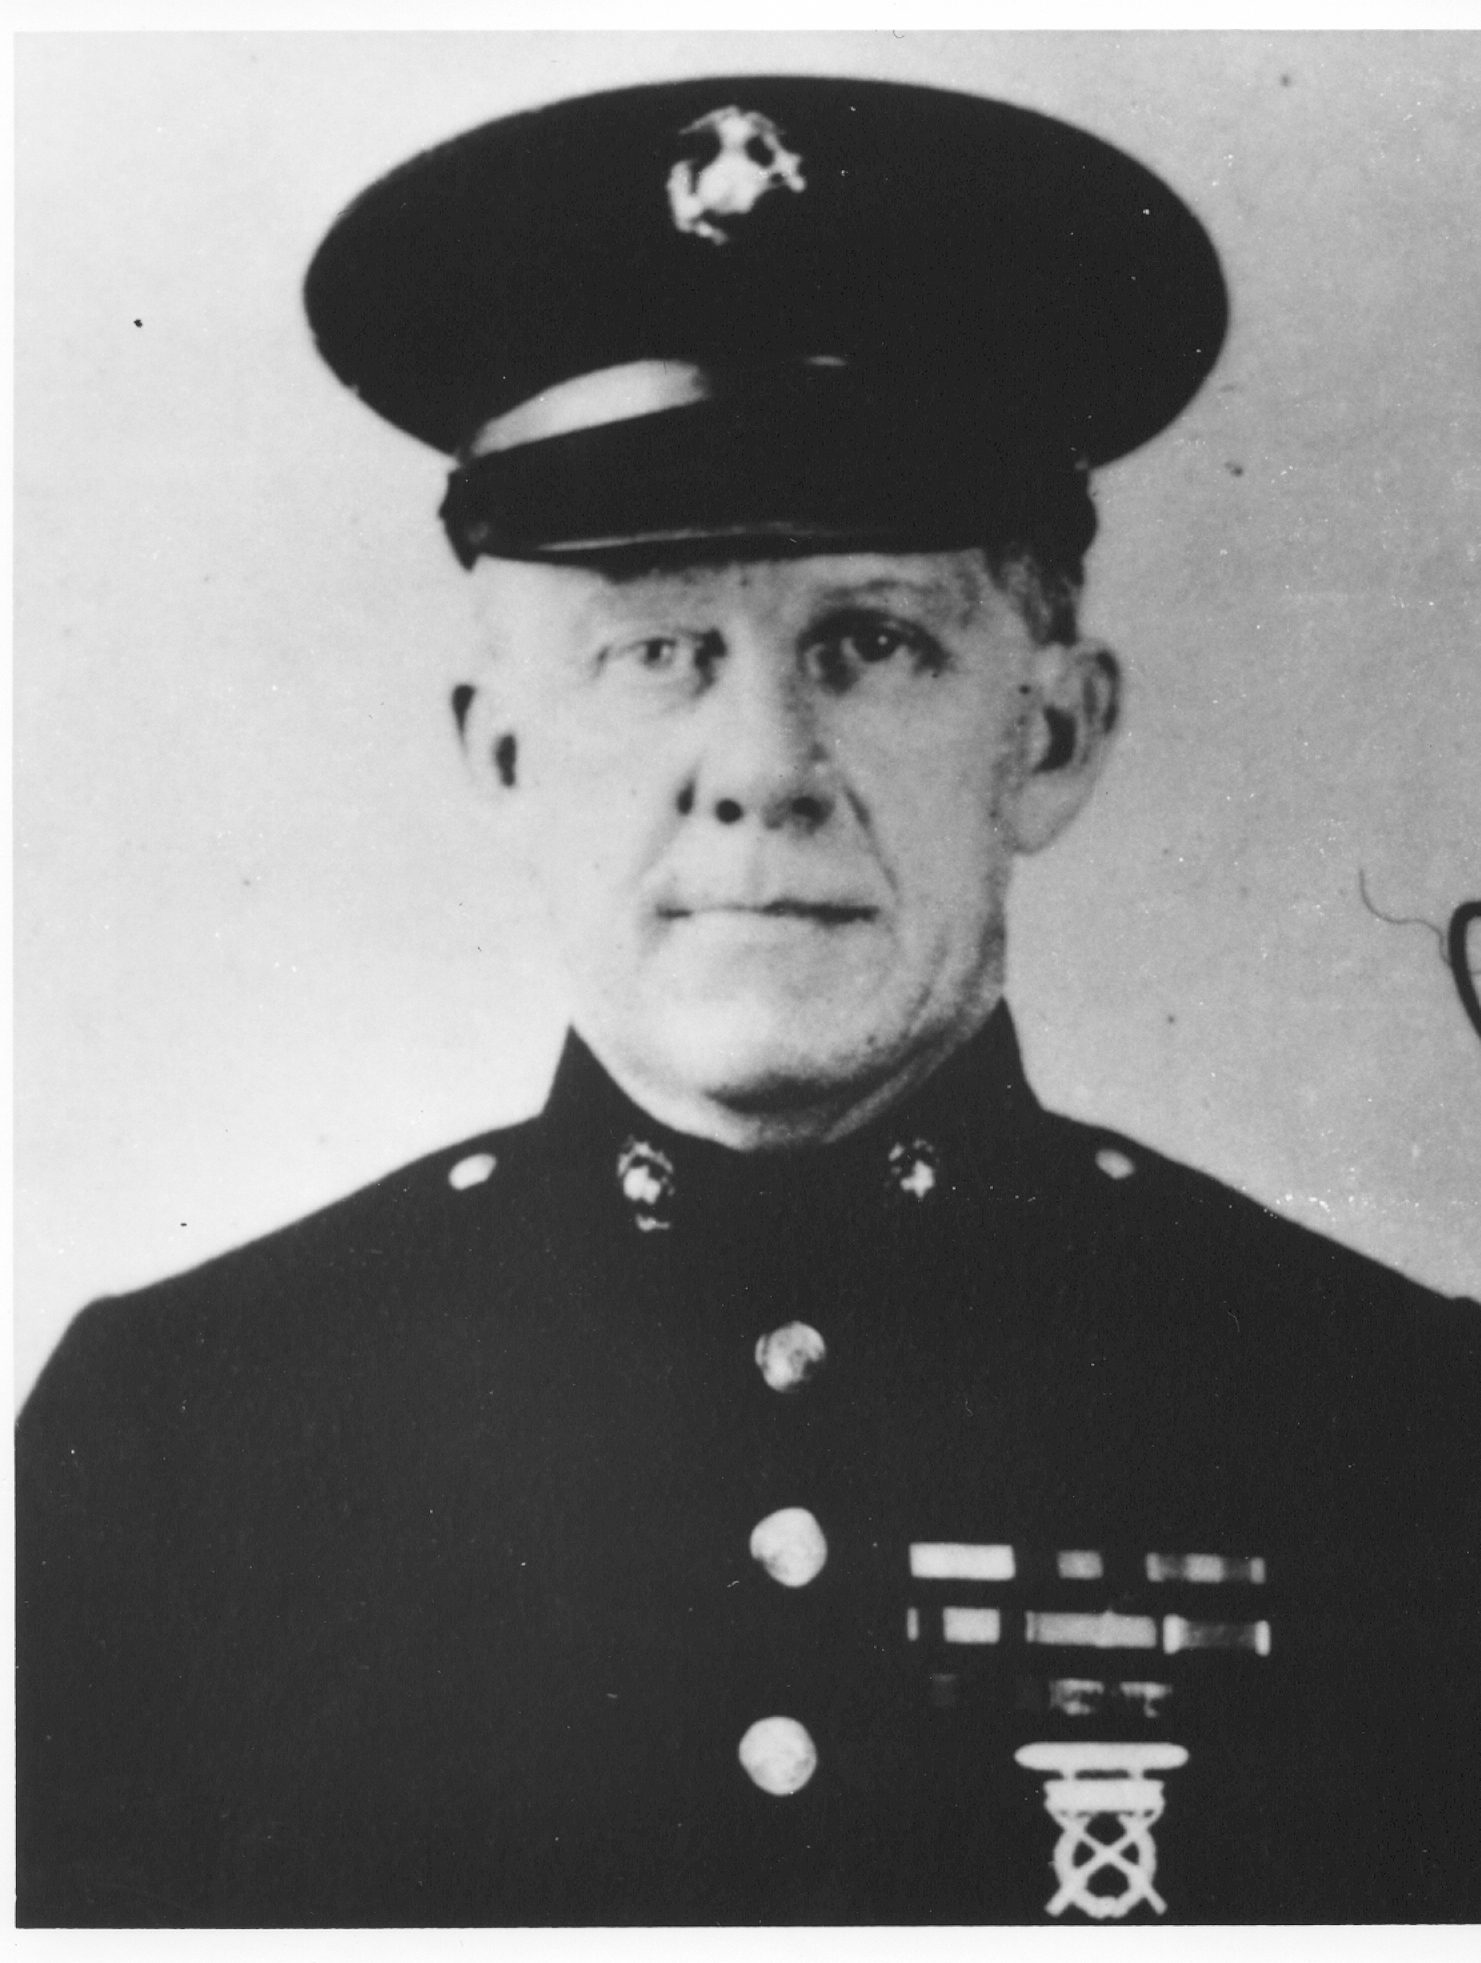 Charles Robert Francis United States Marine Corps Medal of Honor recipient